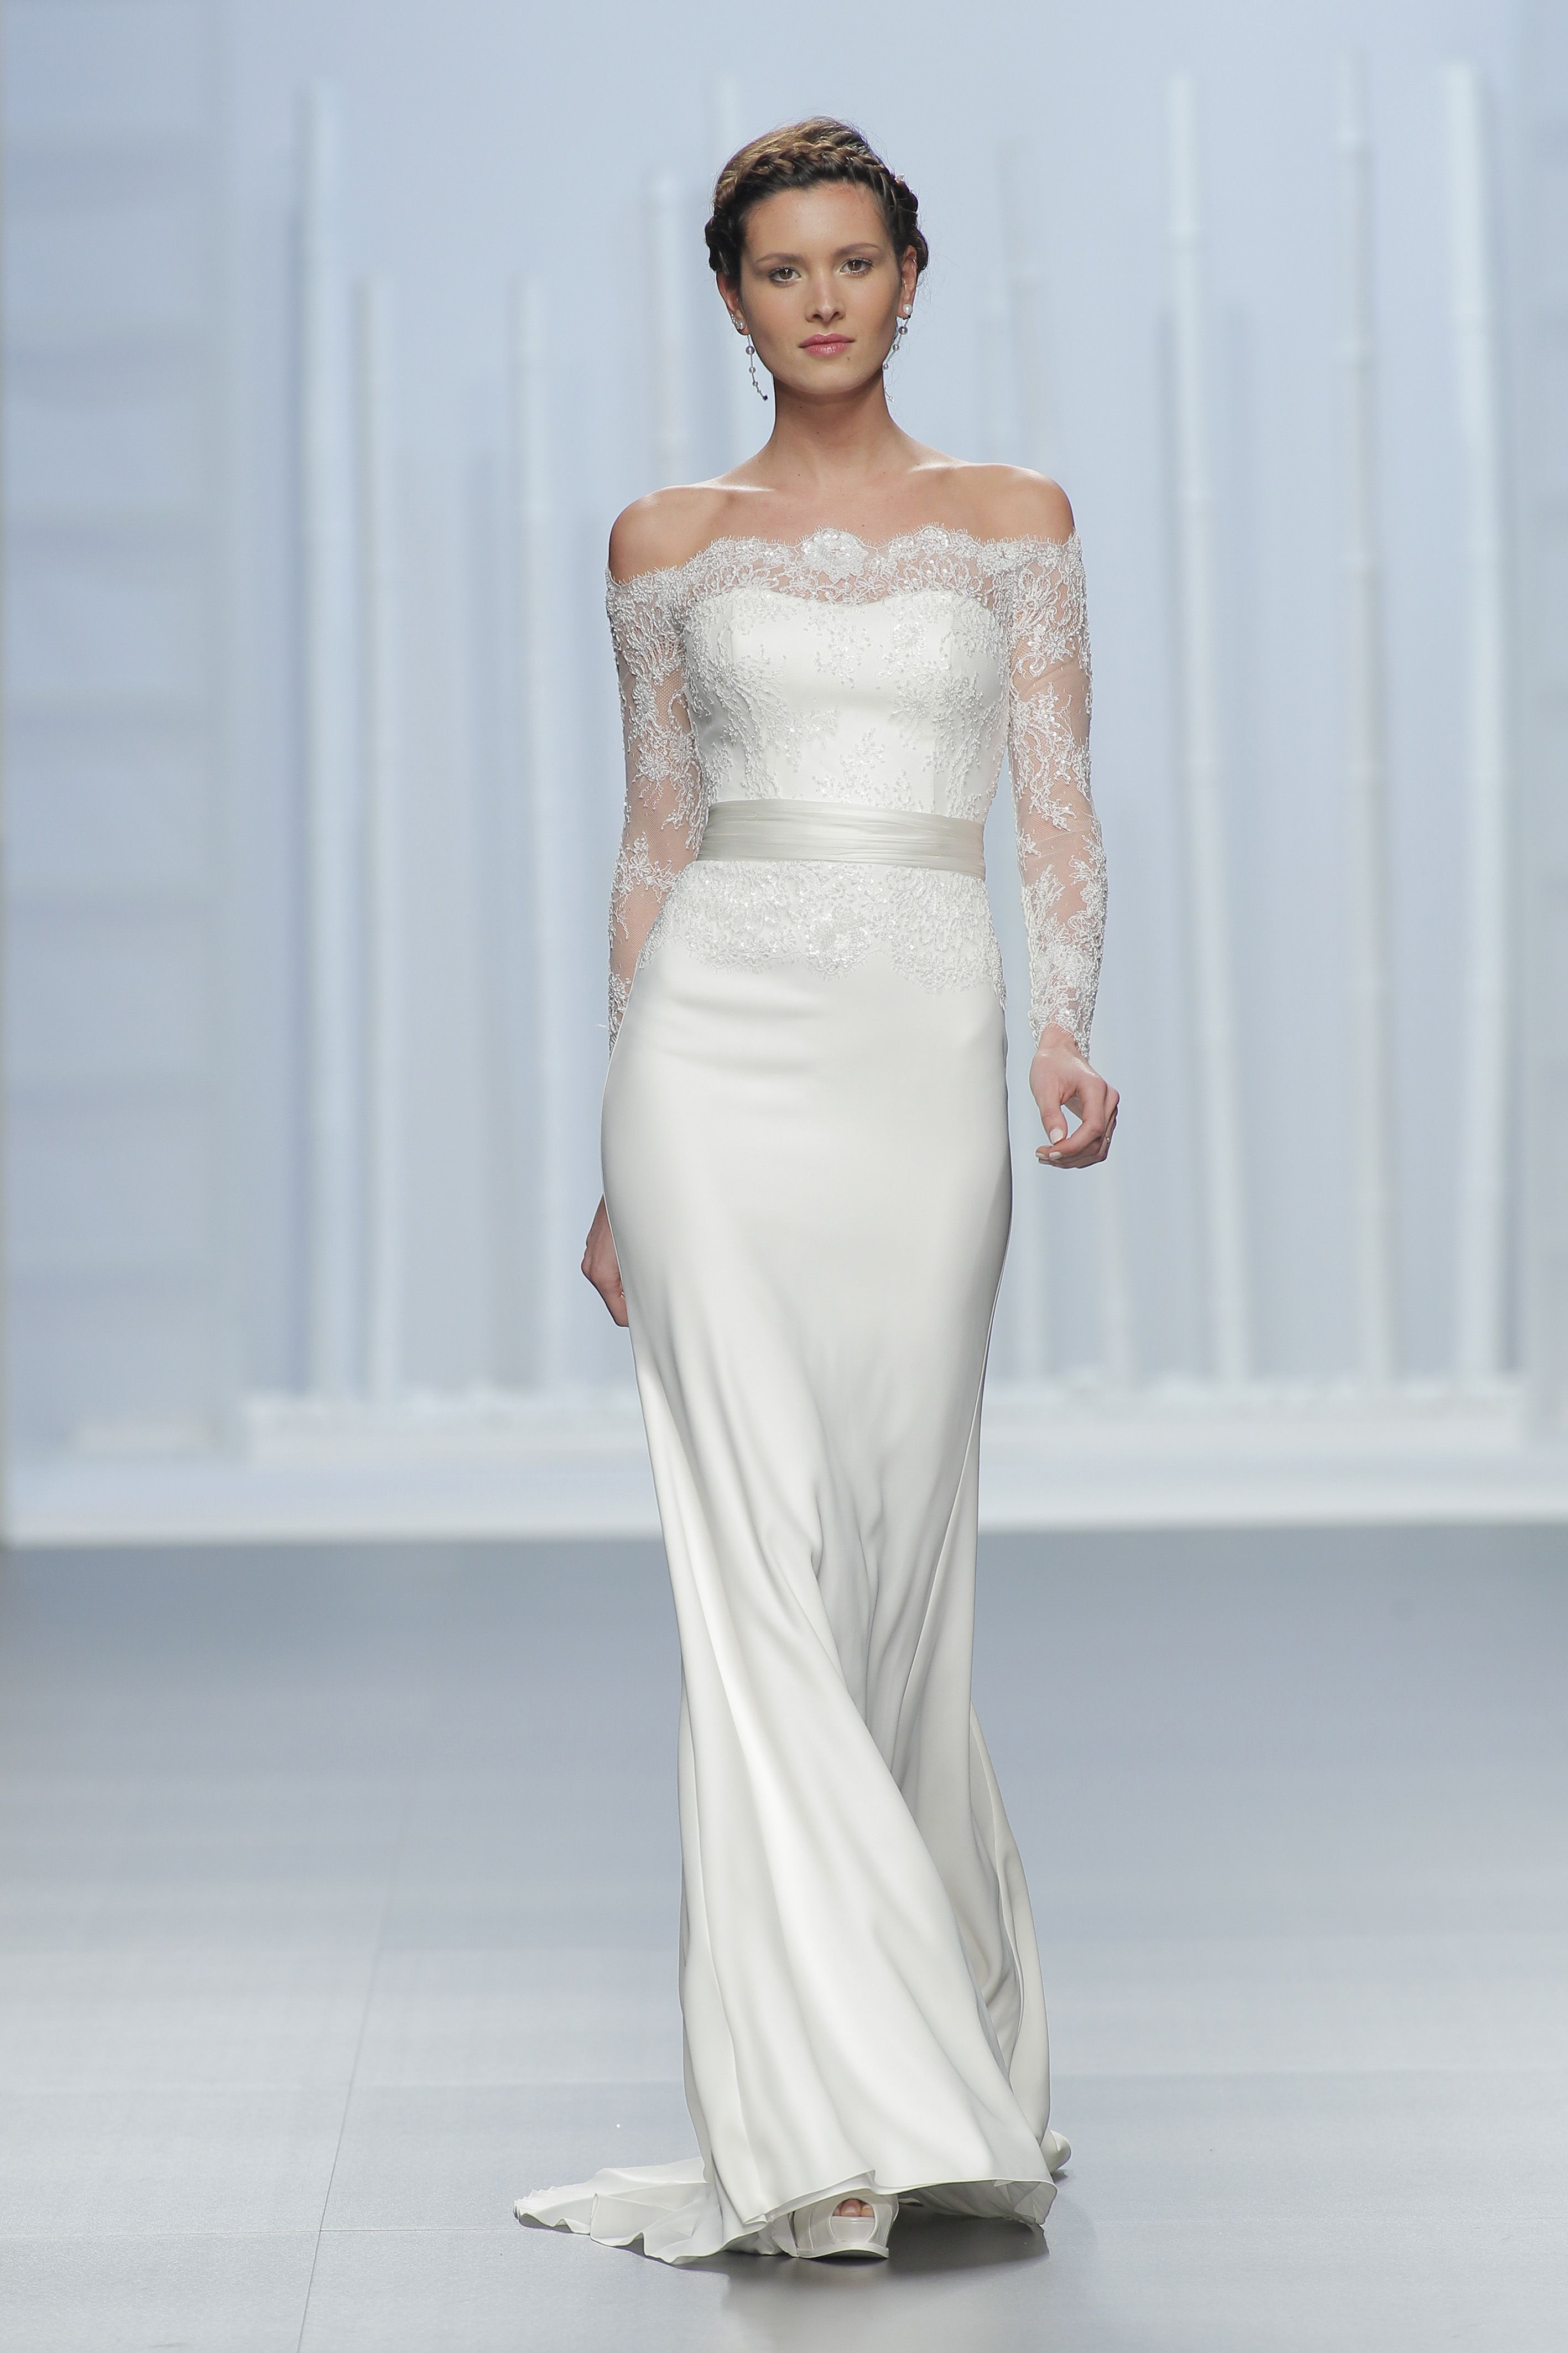 Nice Vestido Novia Griego Elaboration - All Wedding Dresses ...